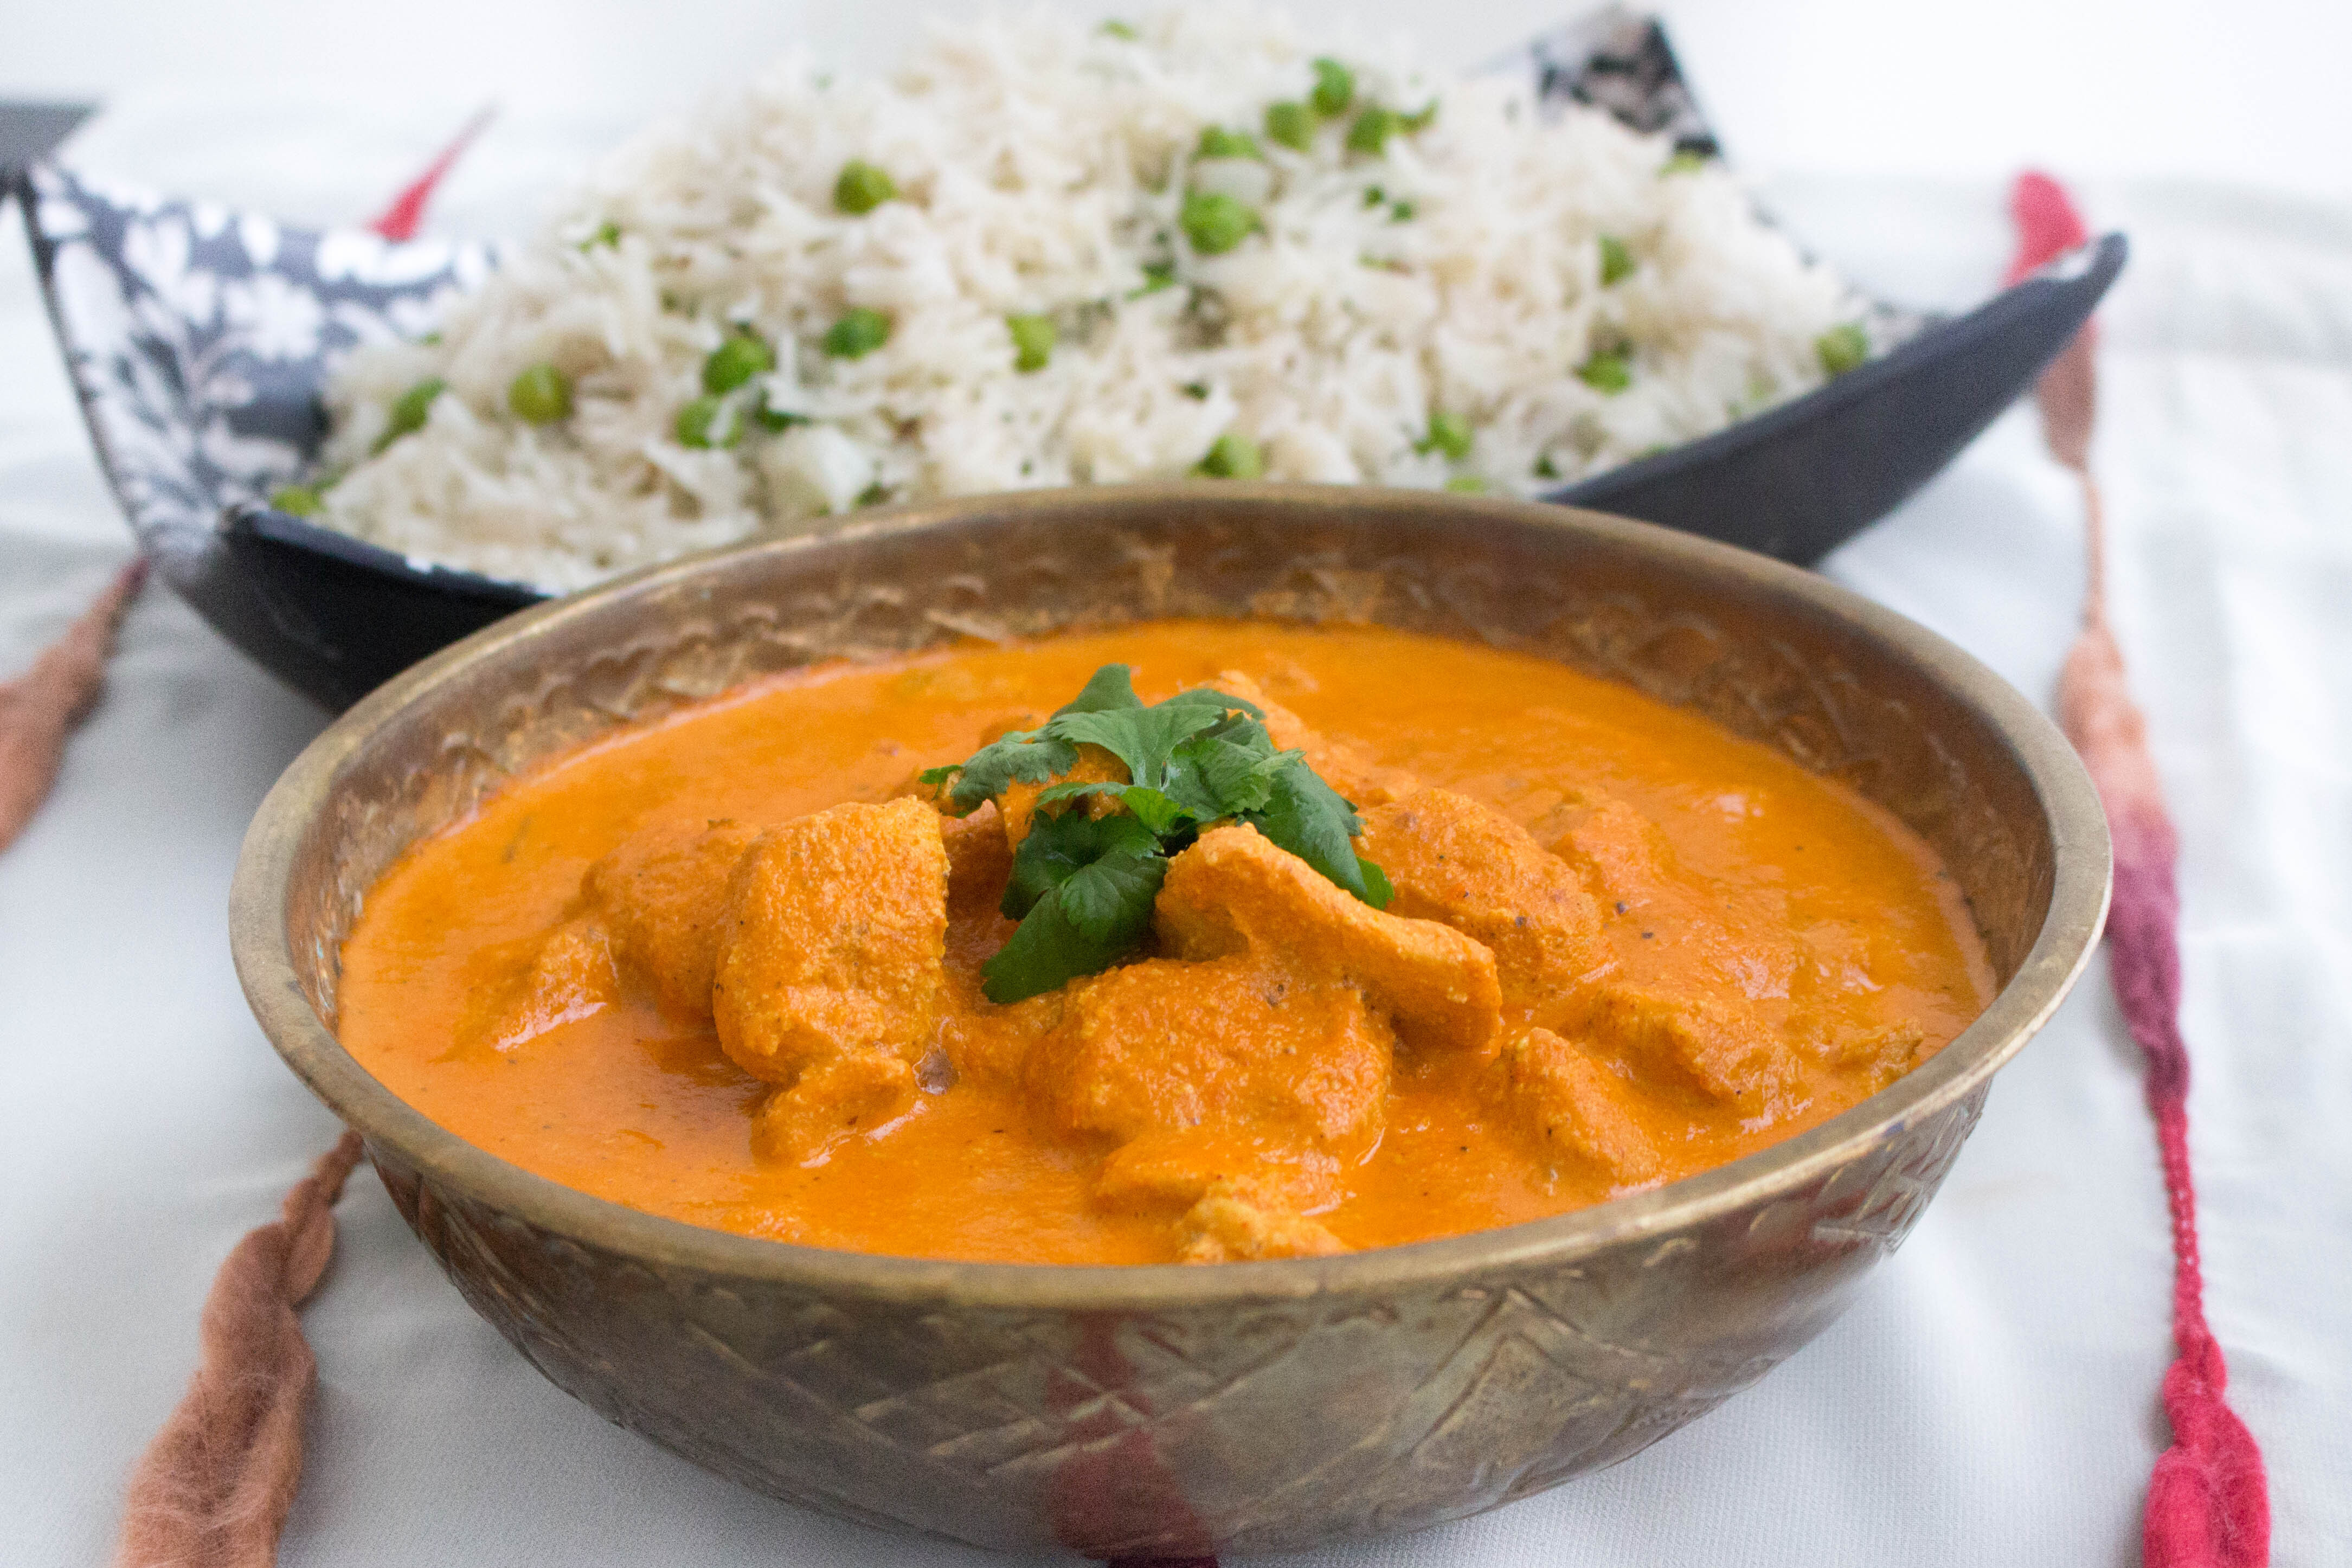 Butterchicken med kycklingfilé